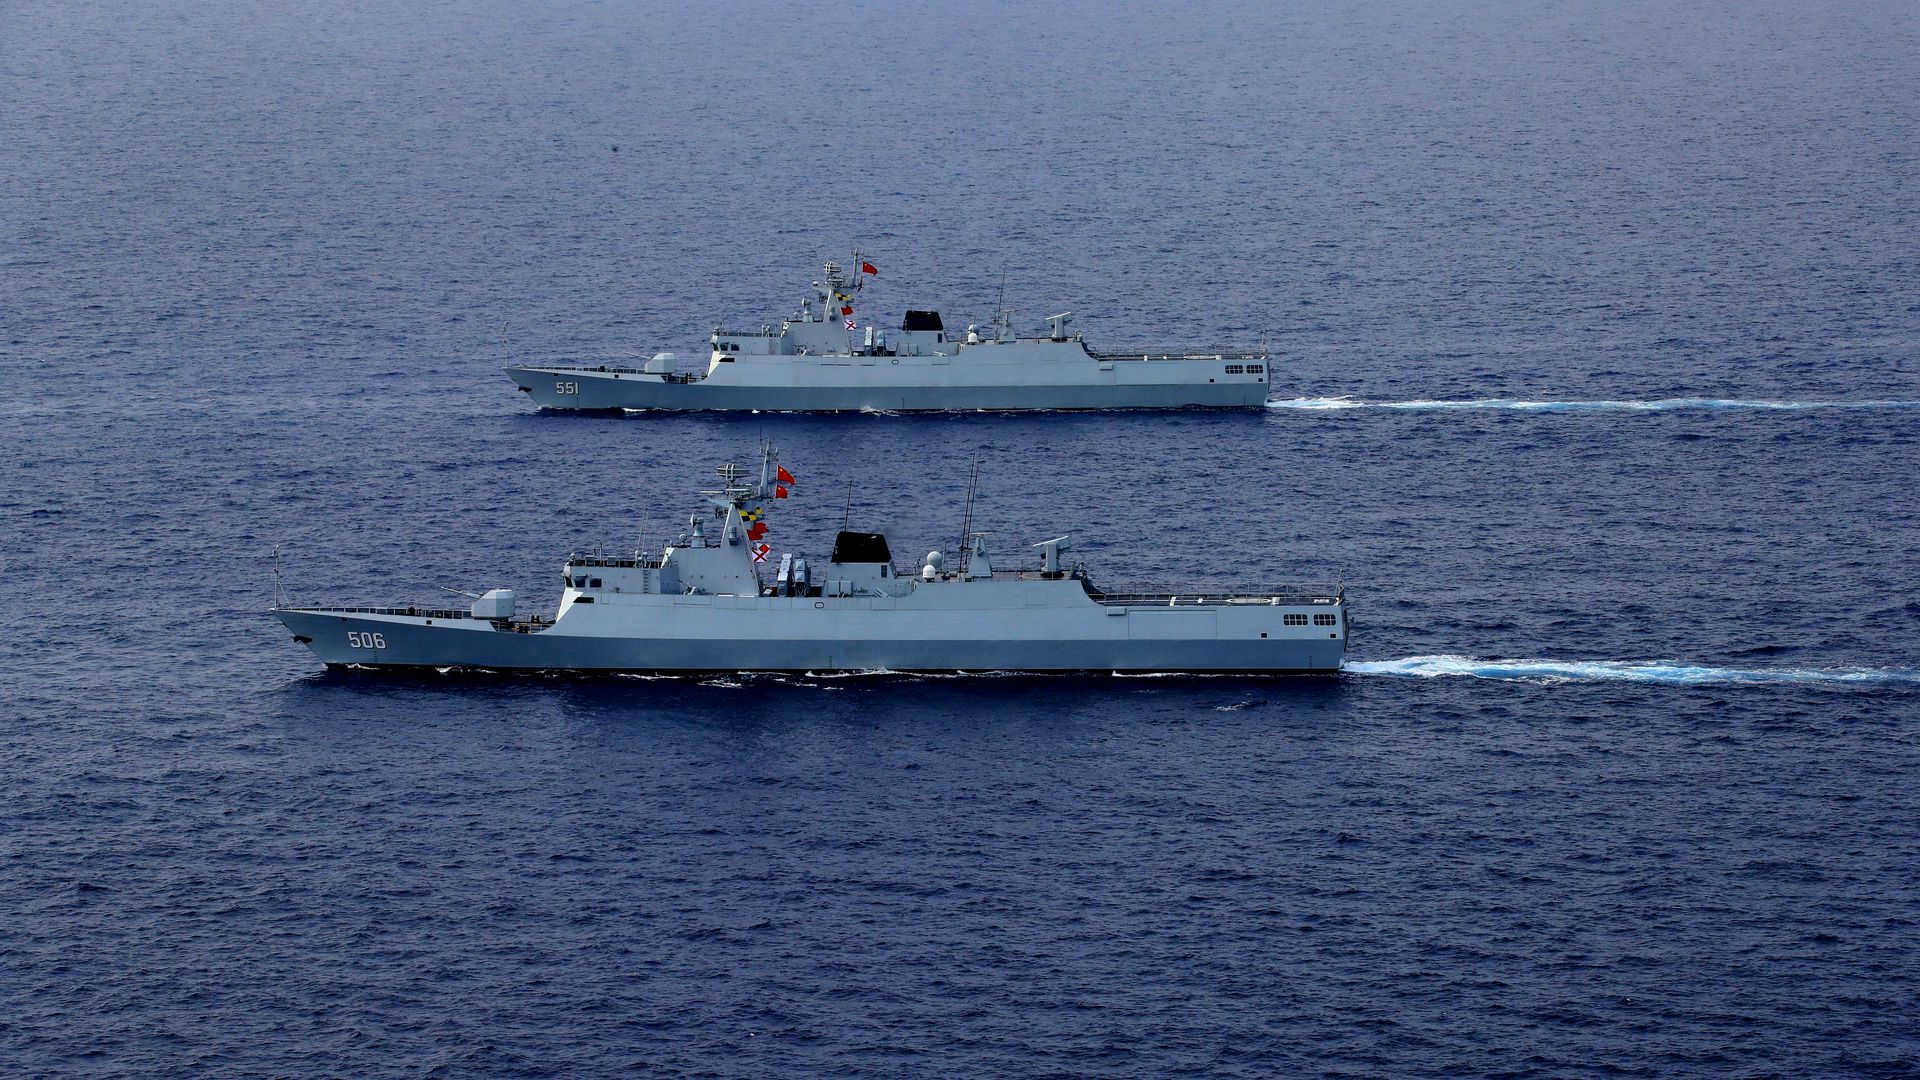 A PLA Navy fleet in the South China Sea.